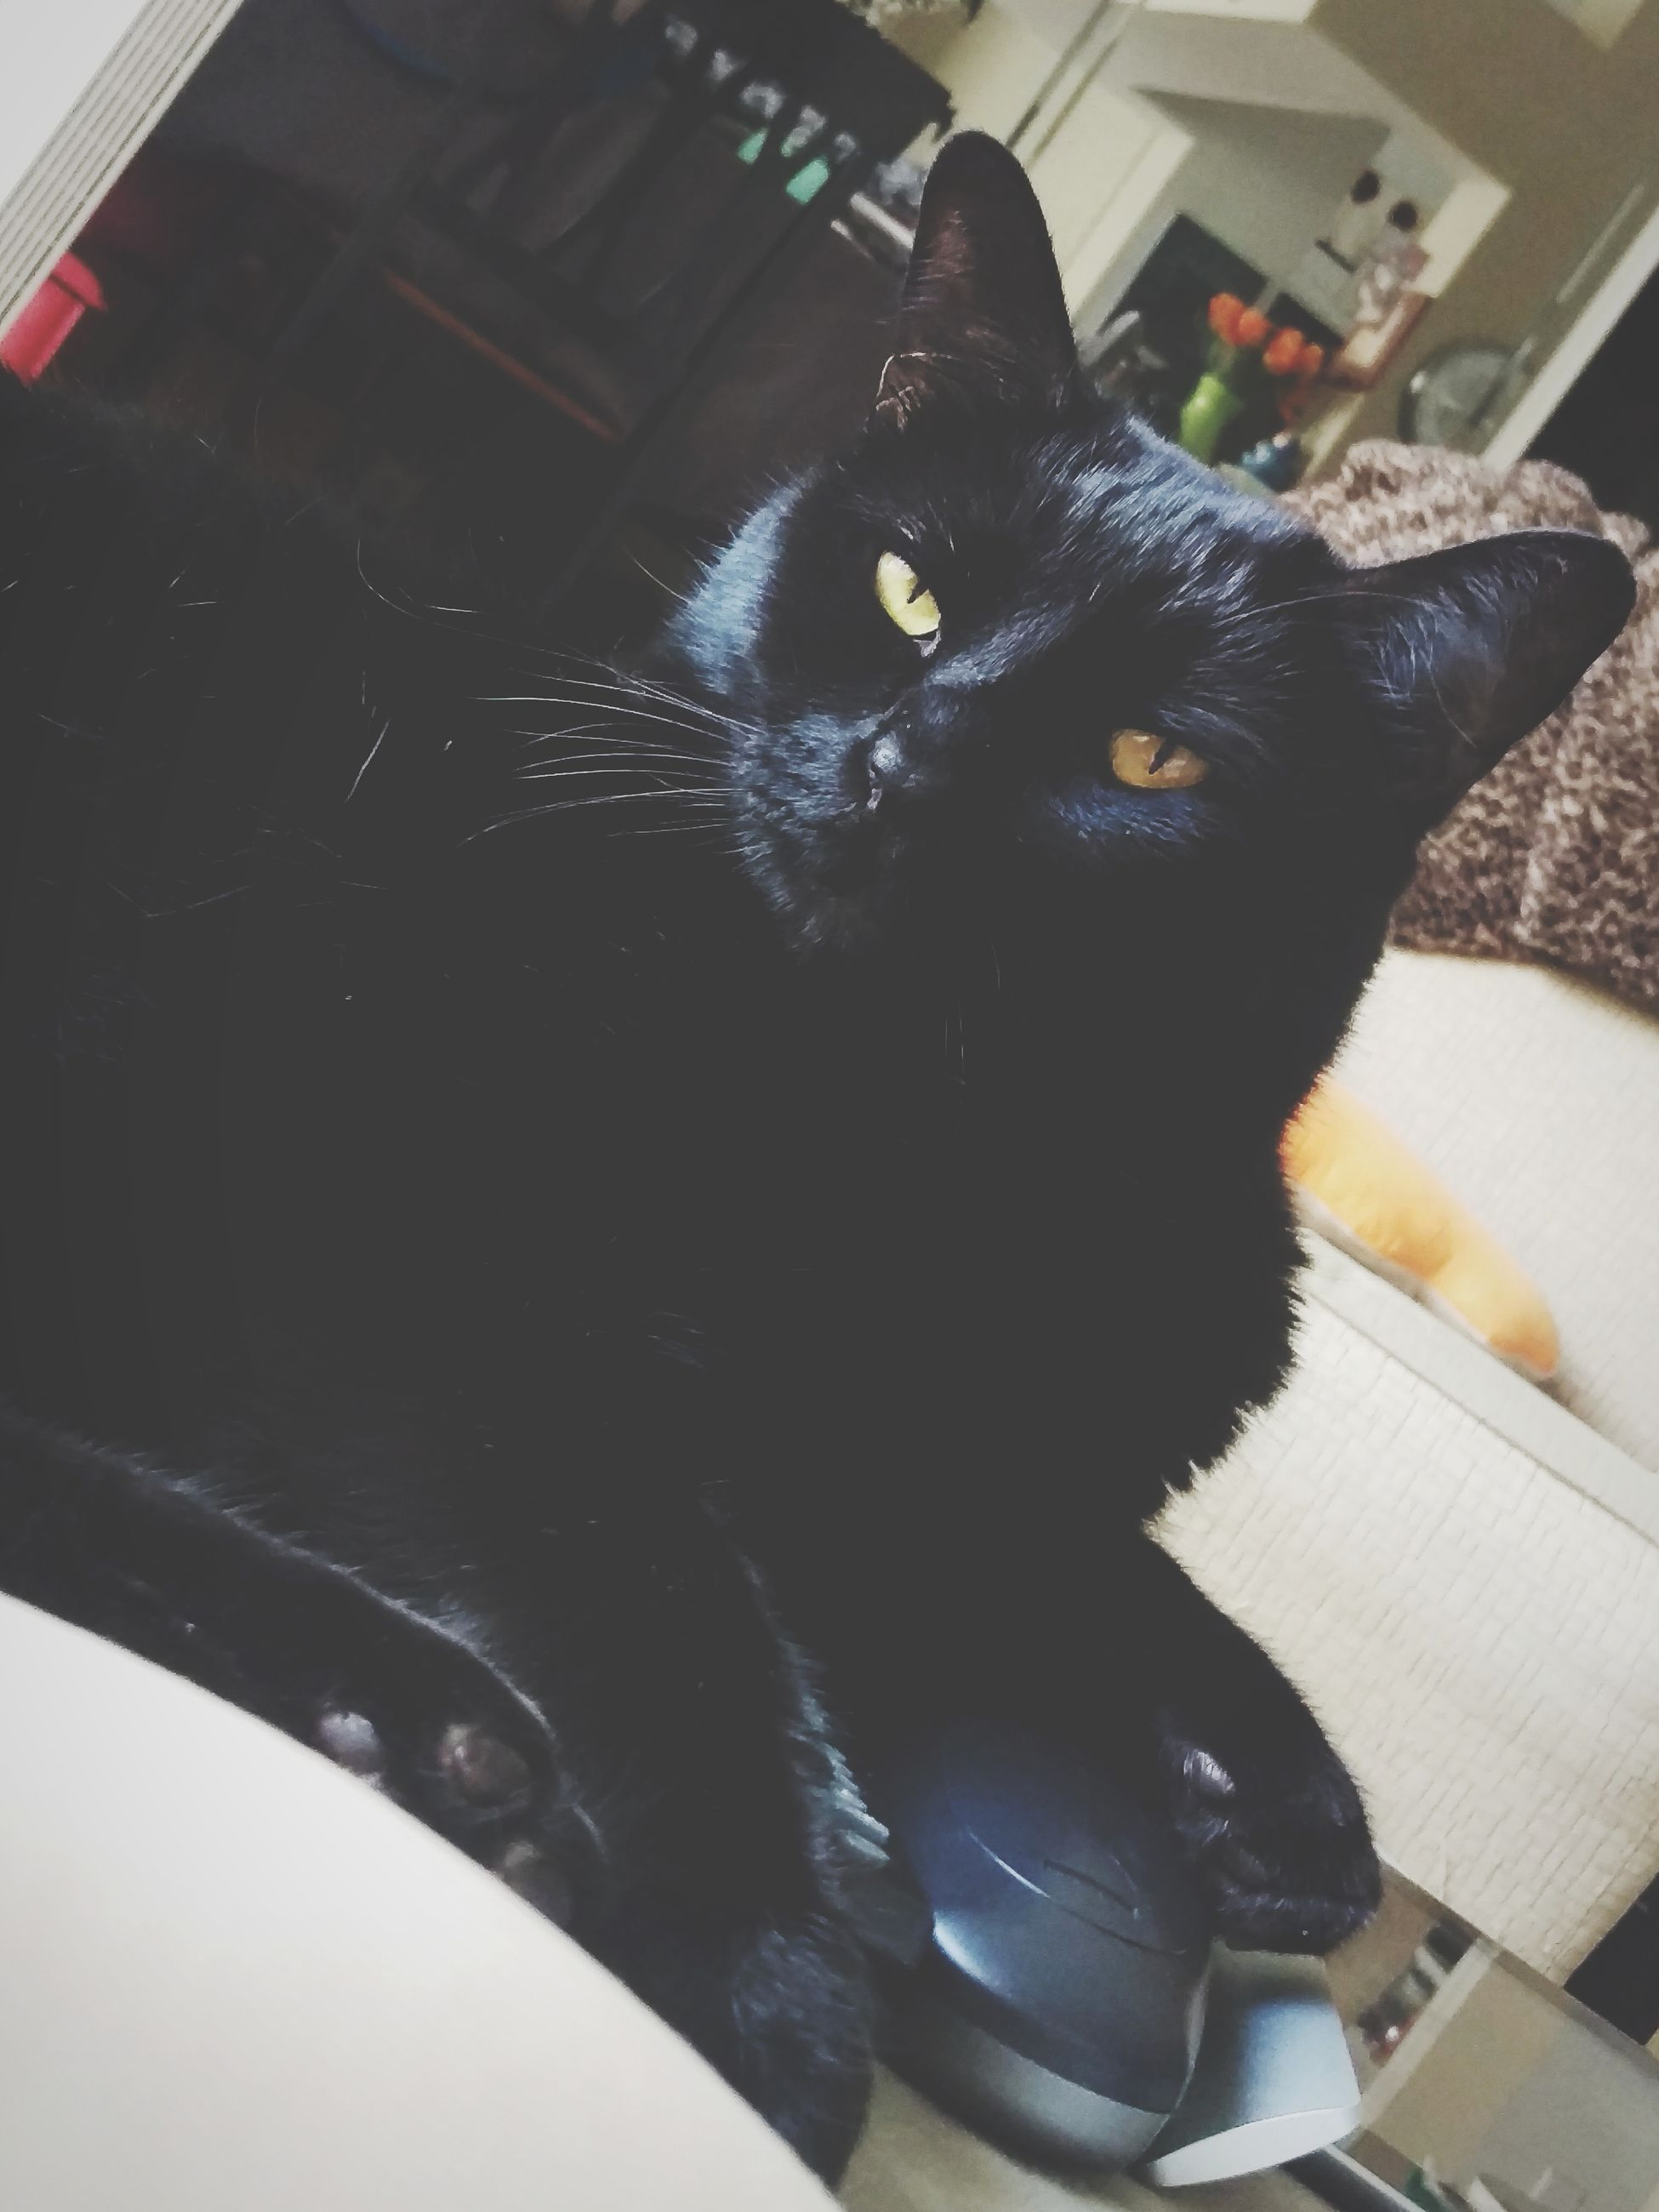 pets, domestic animals, domestic cat, one animal, animal themes, feline, mammal, indoors, portrait, looking at camera, black color, no people, high angle view, whisker, sitting, close-up, day